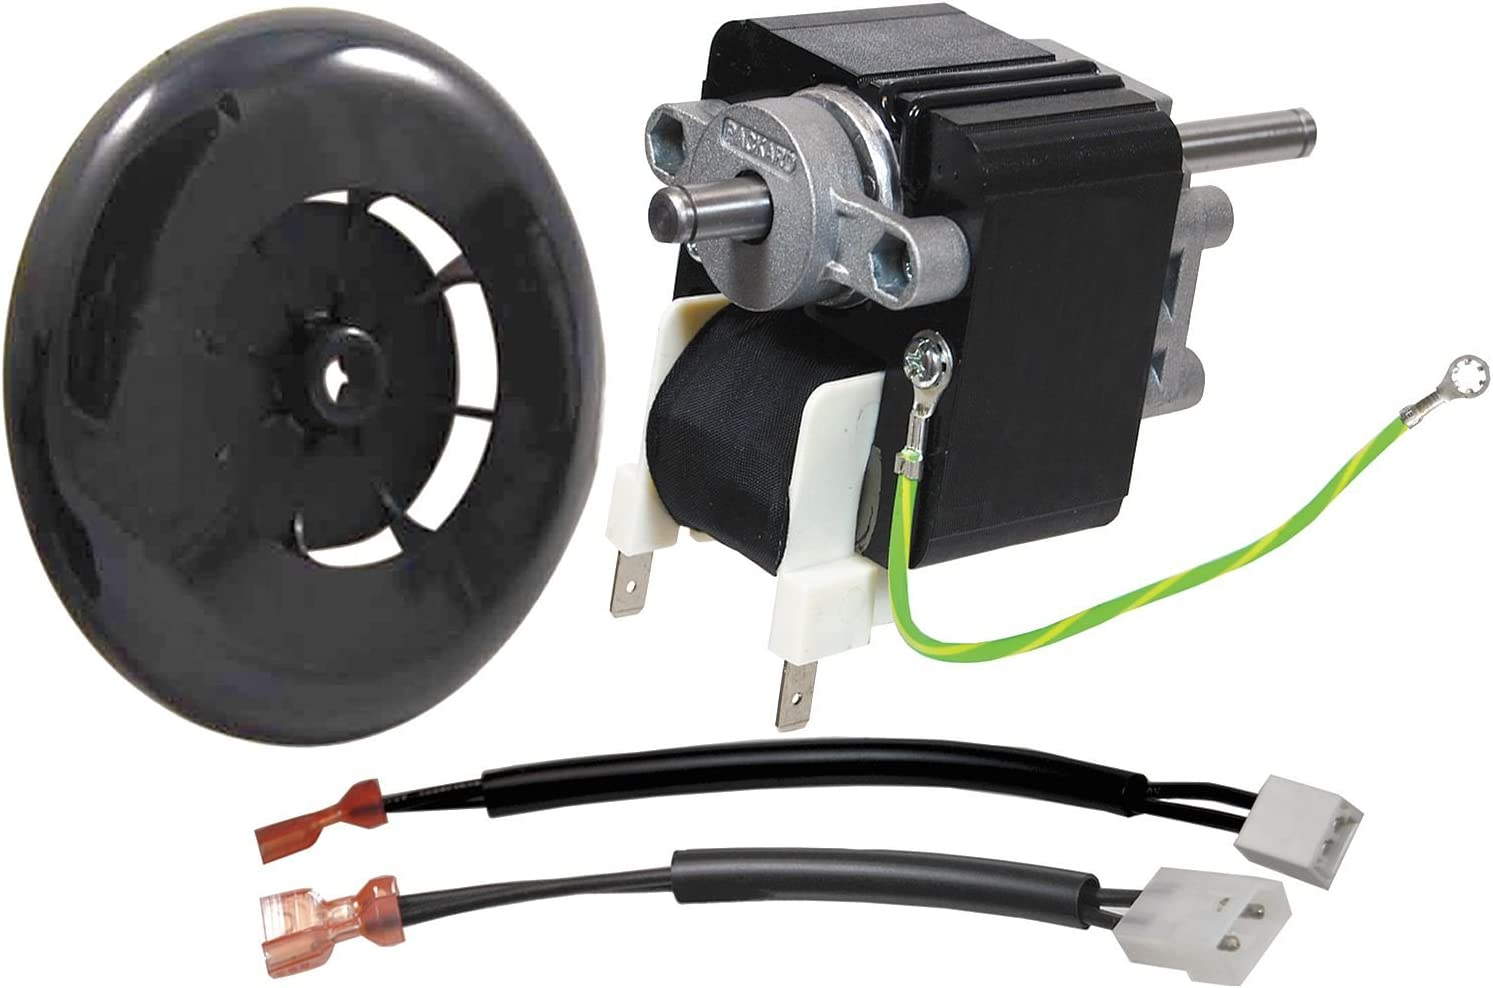 Packard Motors 65570 - 25MHP 230V 3000RPM CW Motor